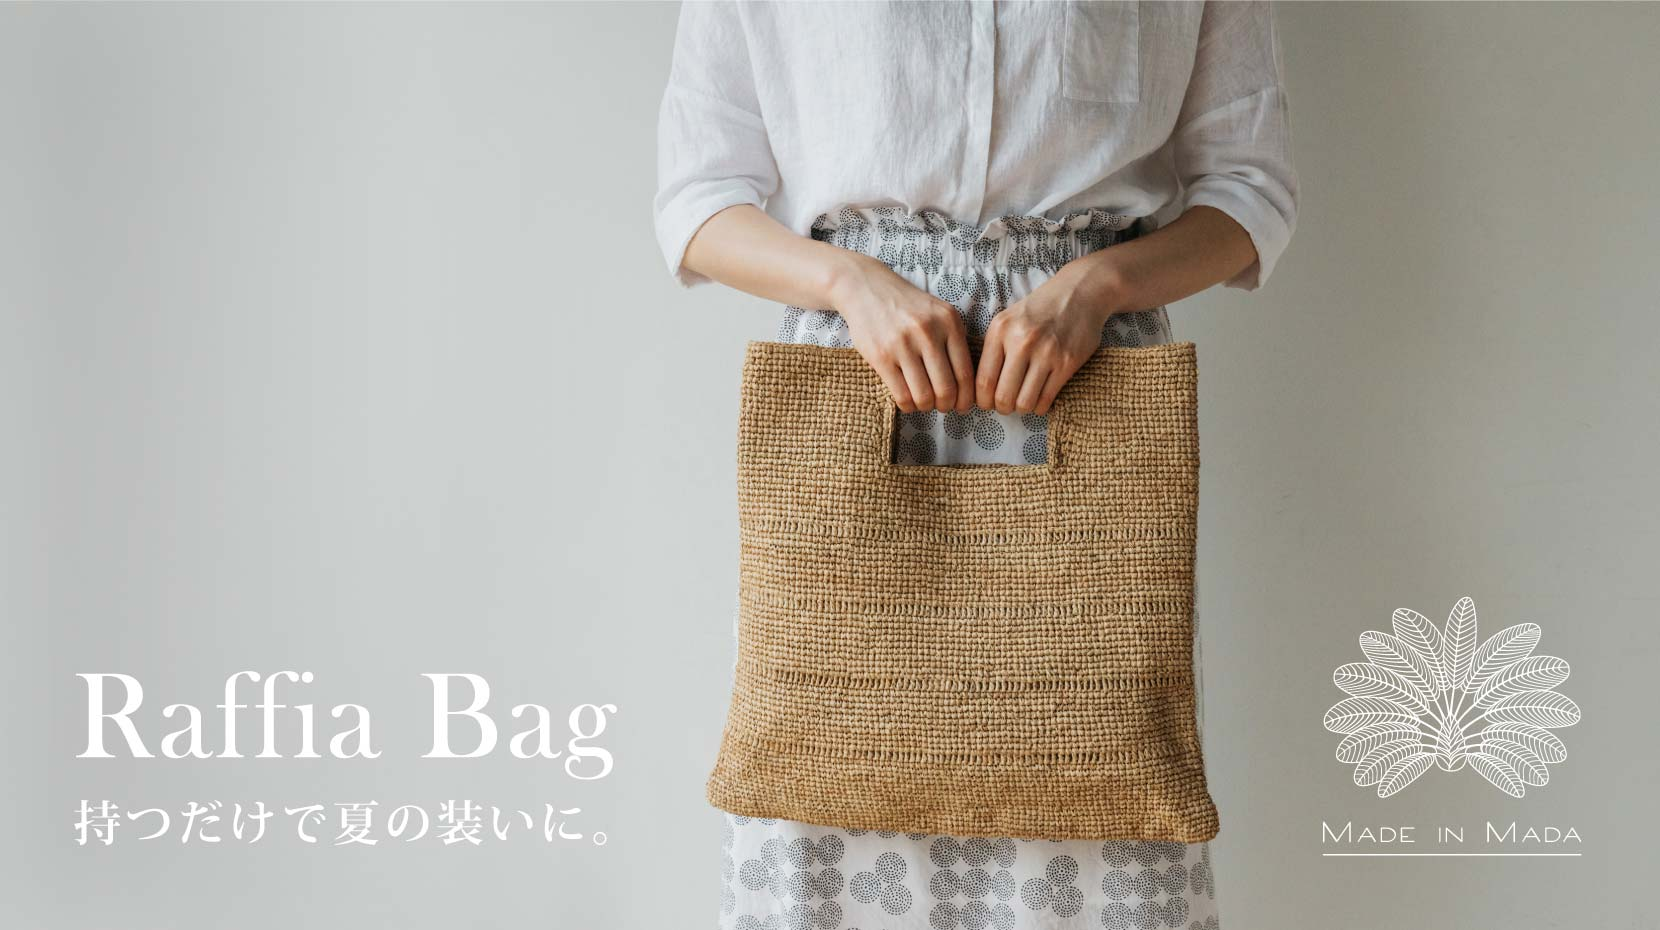 Raffia Bag - Made In Mada